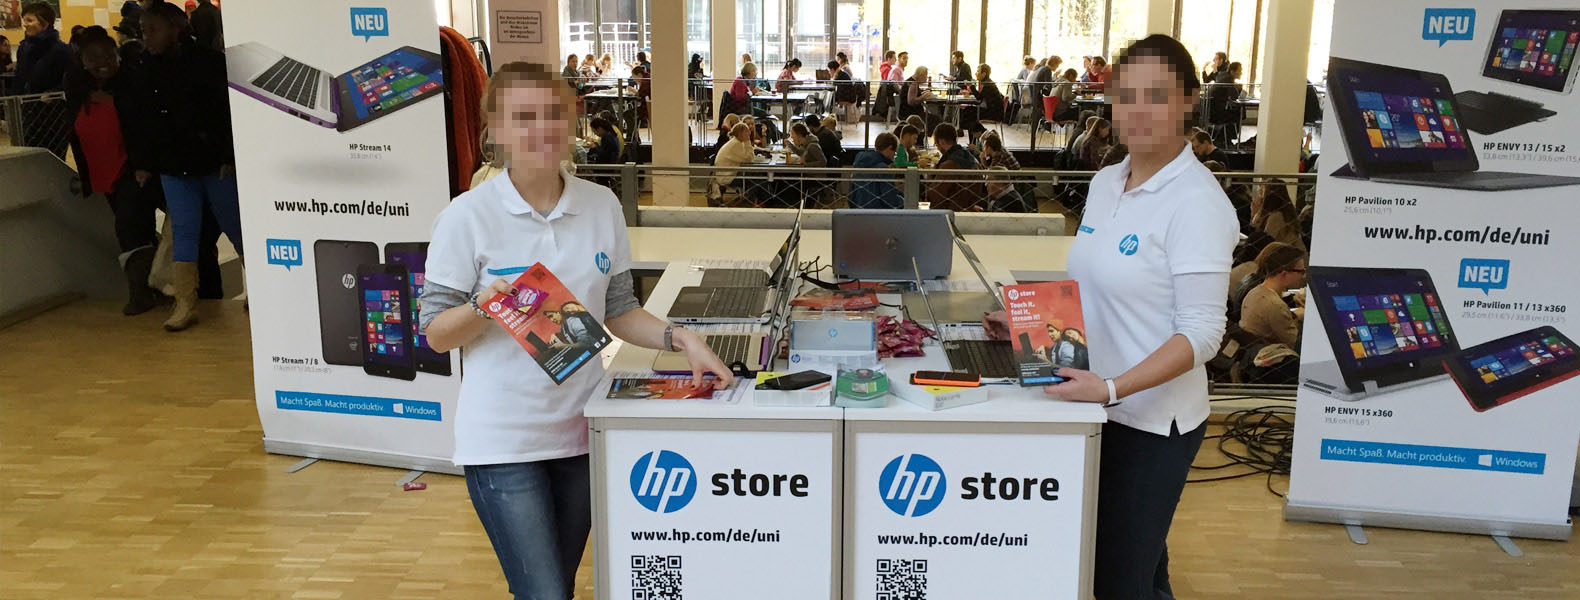 CAMPUS-Promotion HP